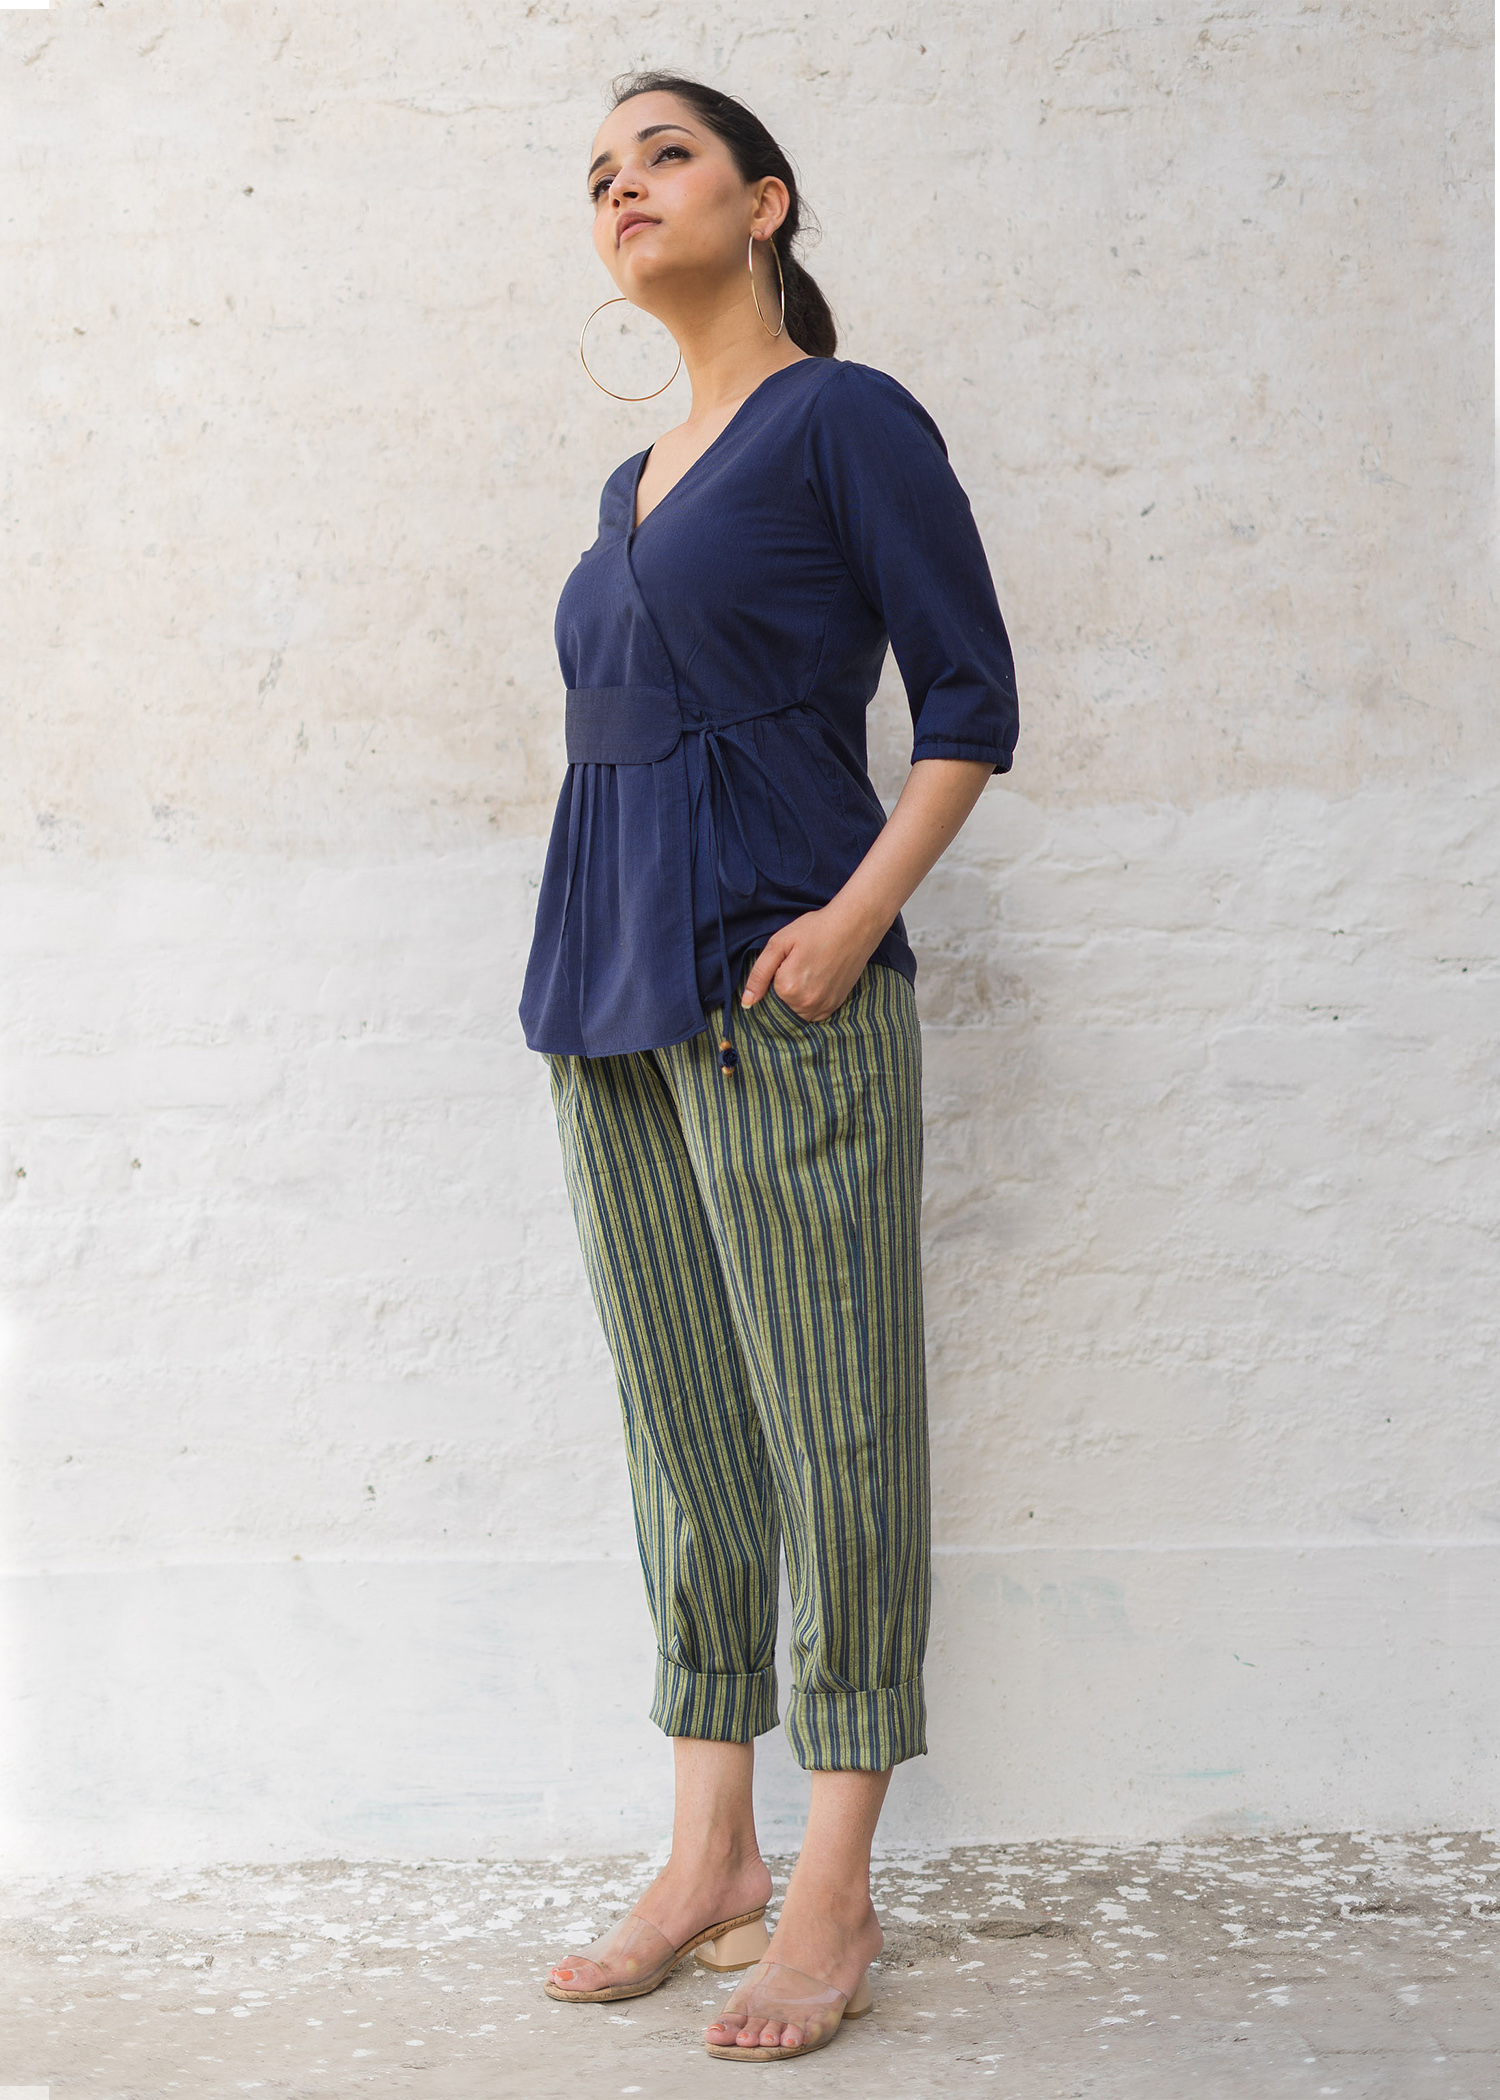 catalog/Summer Story 2019/stripe pants 2.jpg